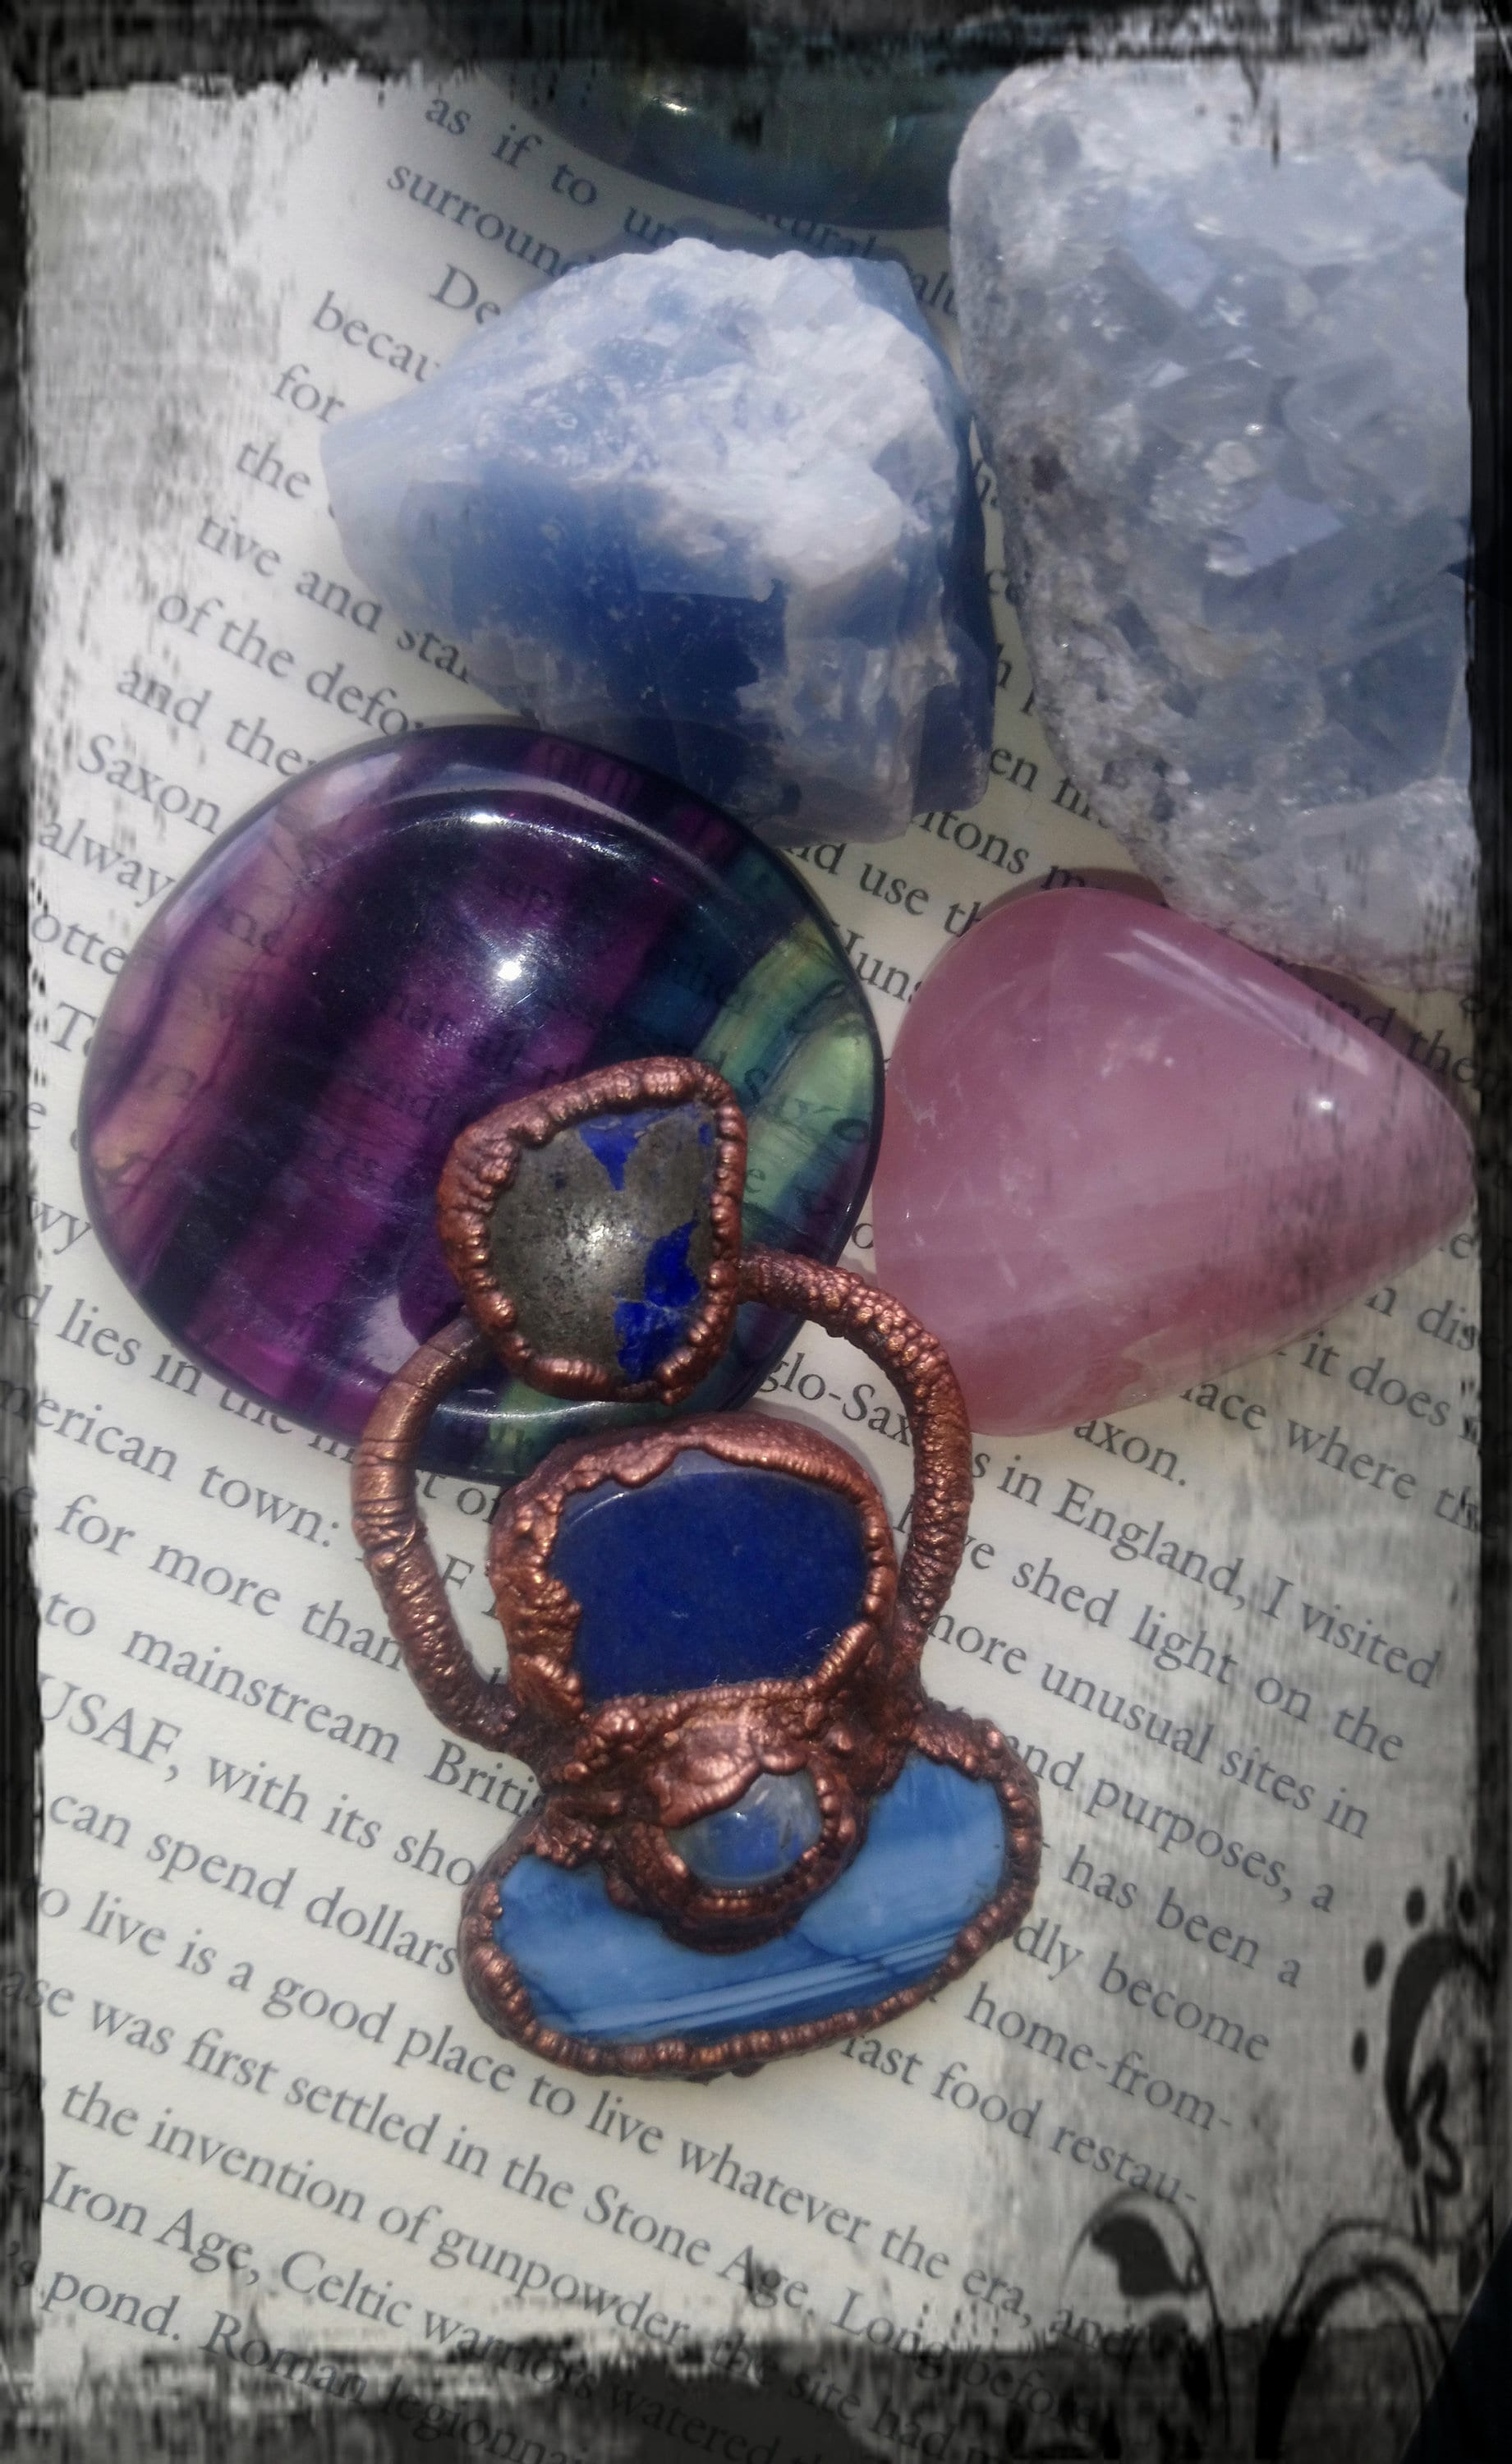 Gorgeous copper electroformed blue opal and blue aventurine pendant with lapis lazuli and moonstone accents